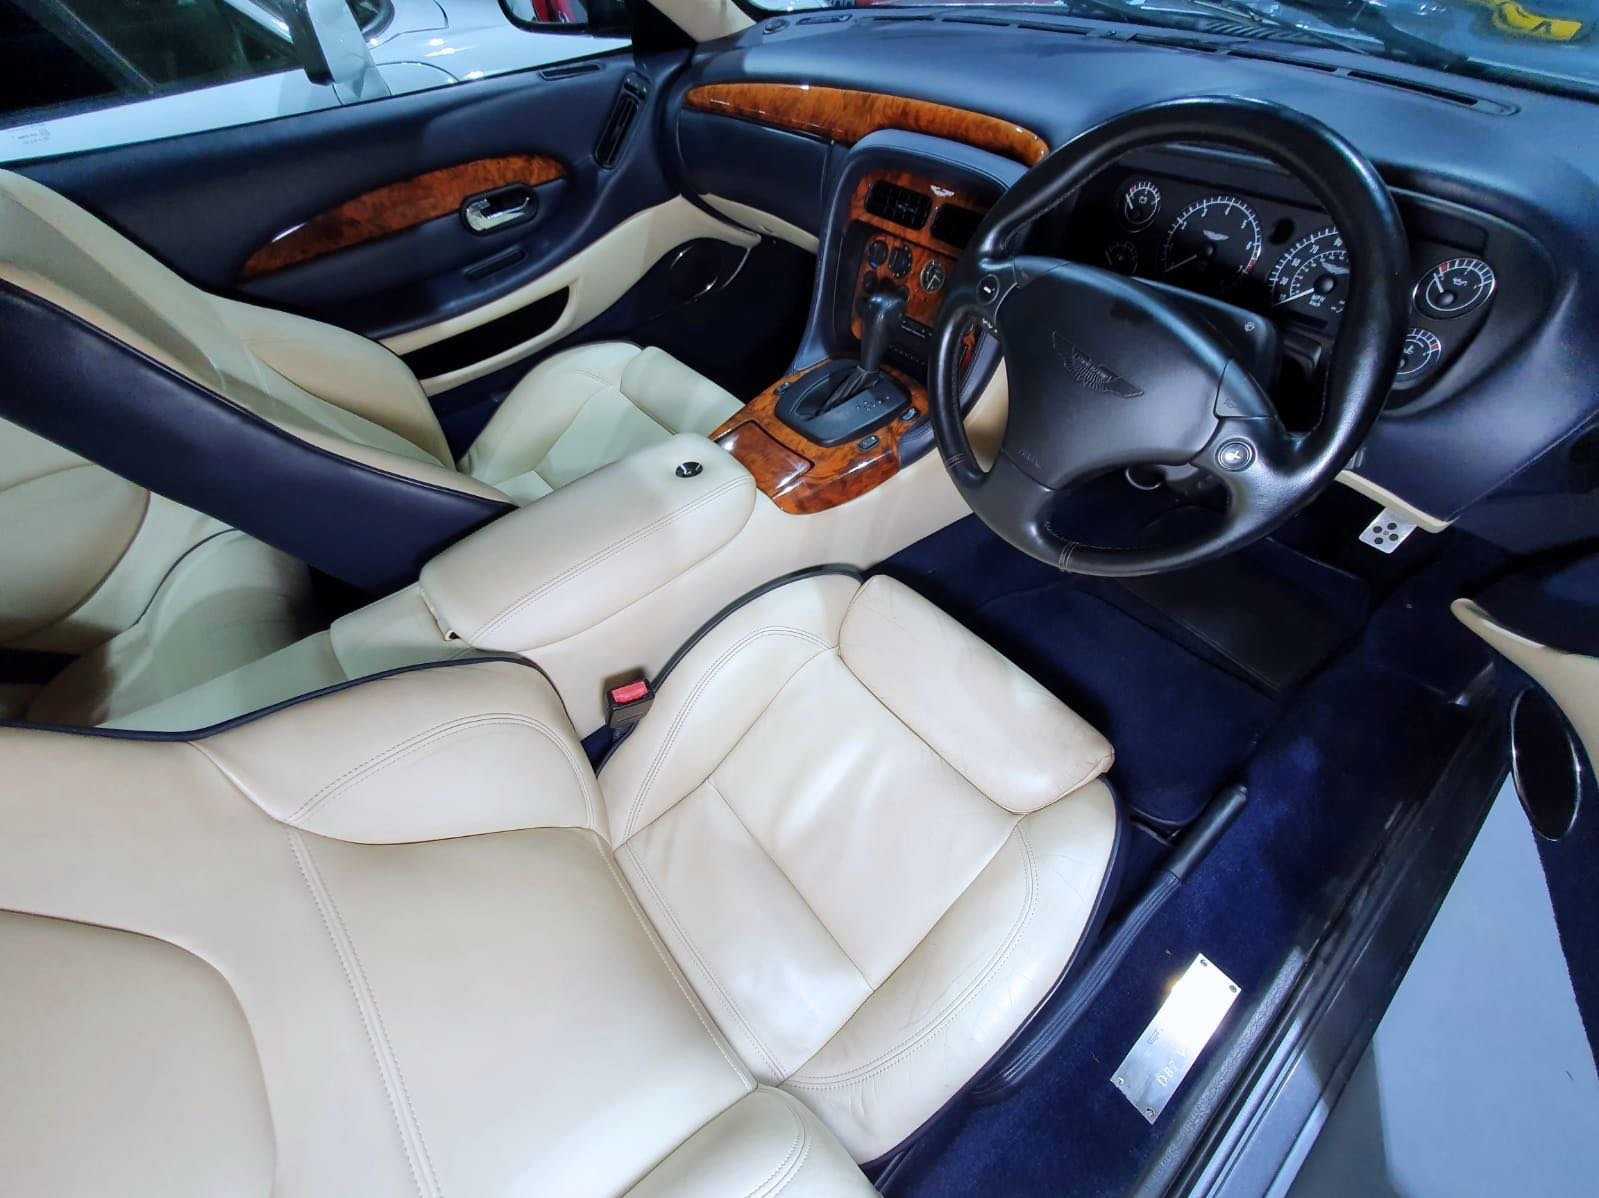 2001 Aston Martin DB7 Vantage Coupe - Immaculate For Sale (picture 5 of 6)